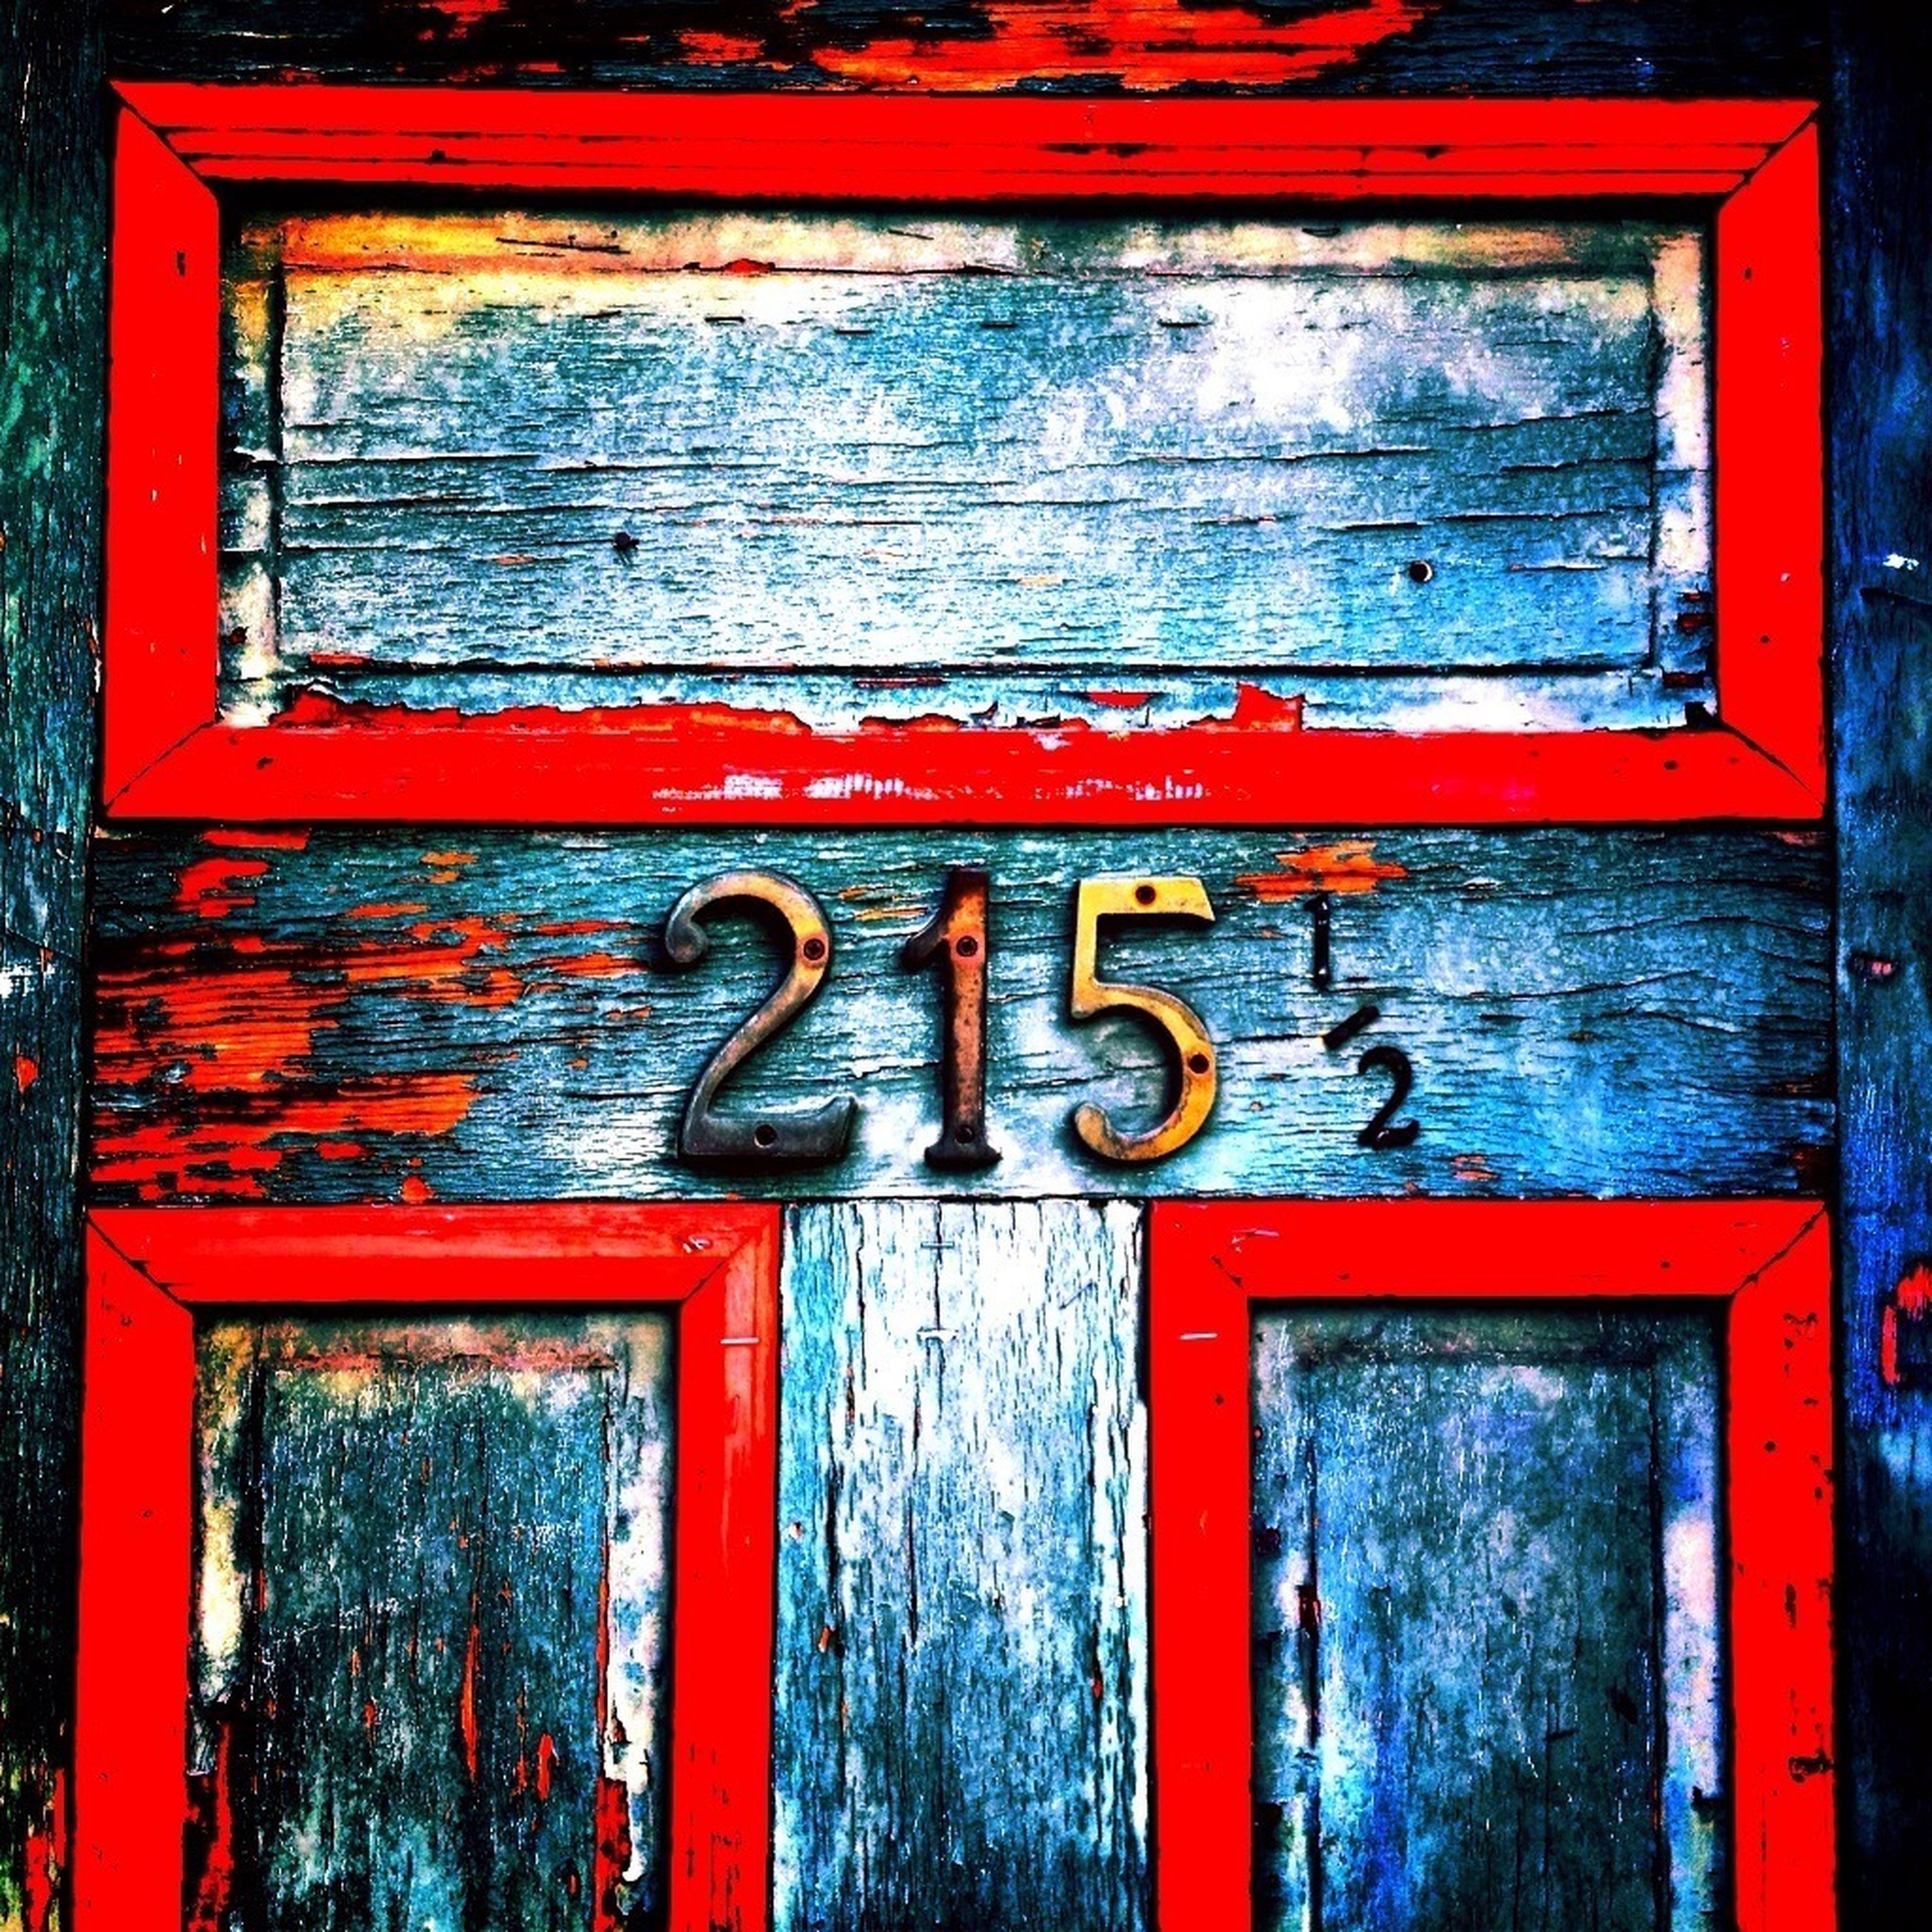 door, red, closed, wood - material, text, building exterior, built structure, safety, communication, close-up, wooden, architecture, protection, security, western script, old, house, window, metal, weathered